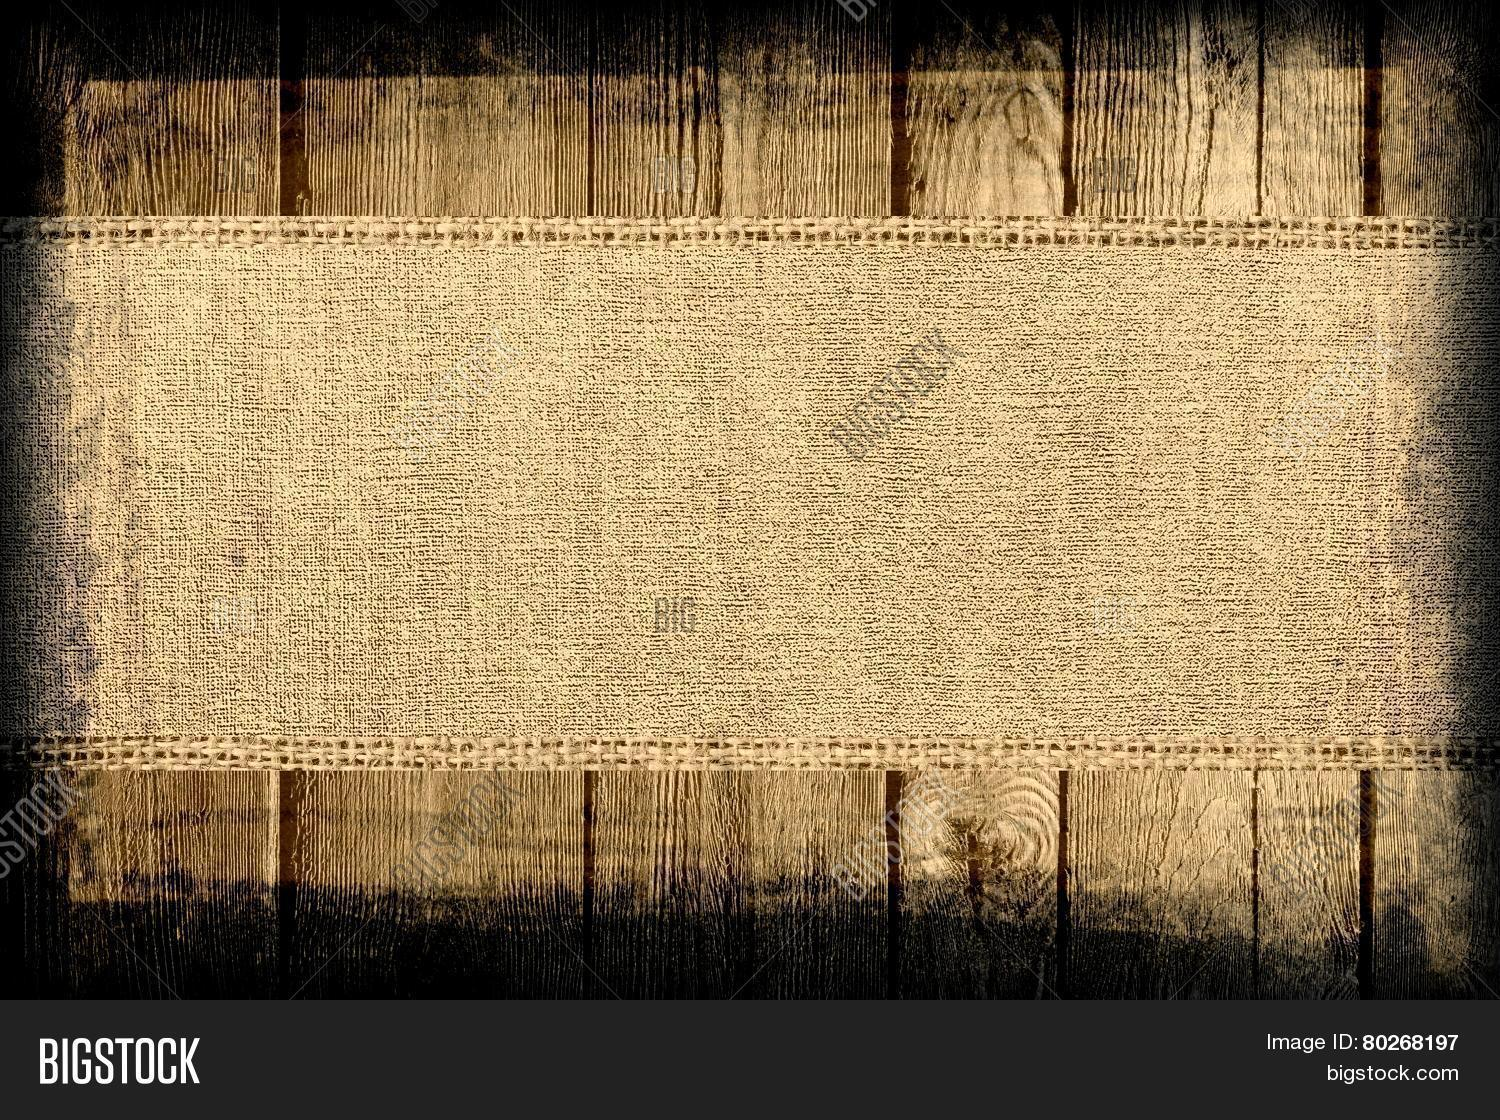 Old Grunge Rustic Canvas Banner Textured With Dark Wood Background